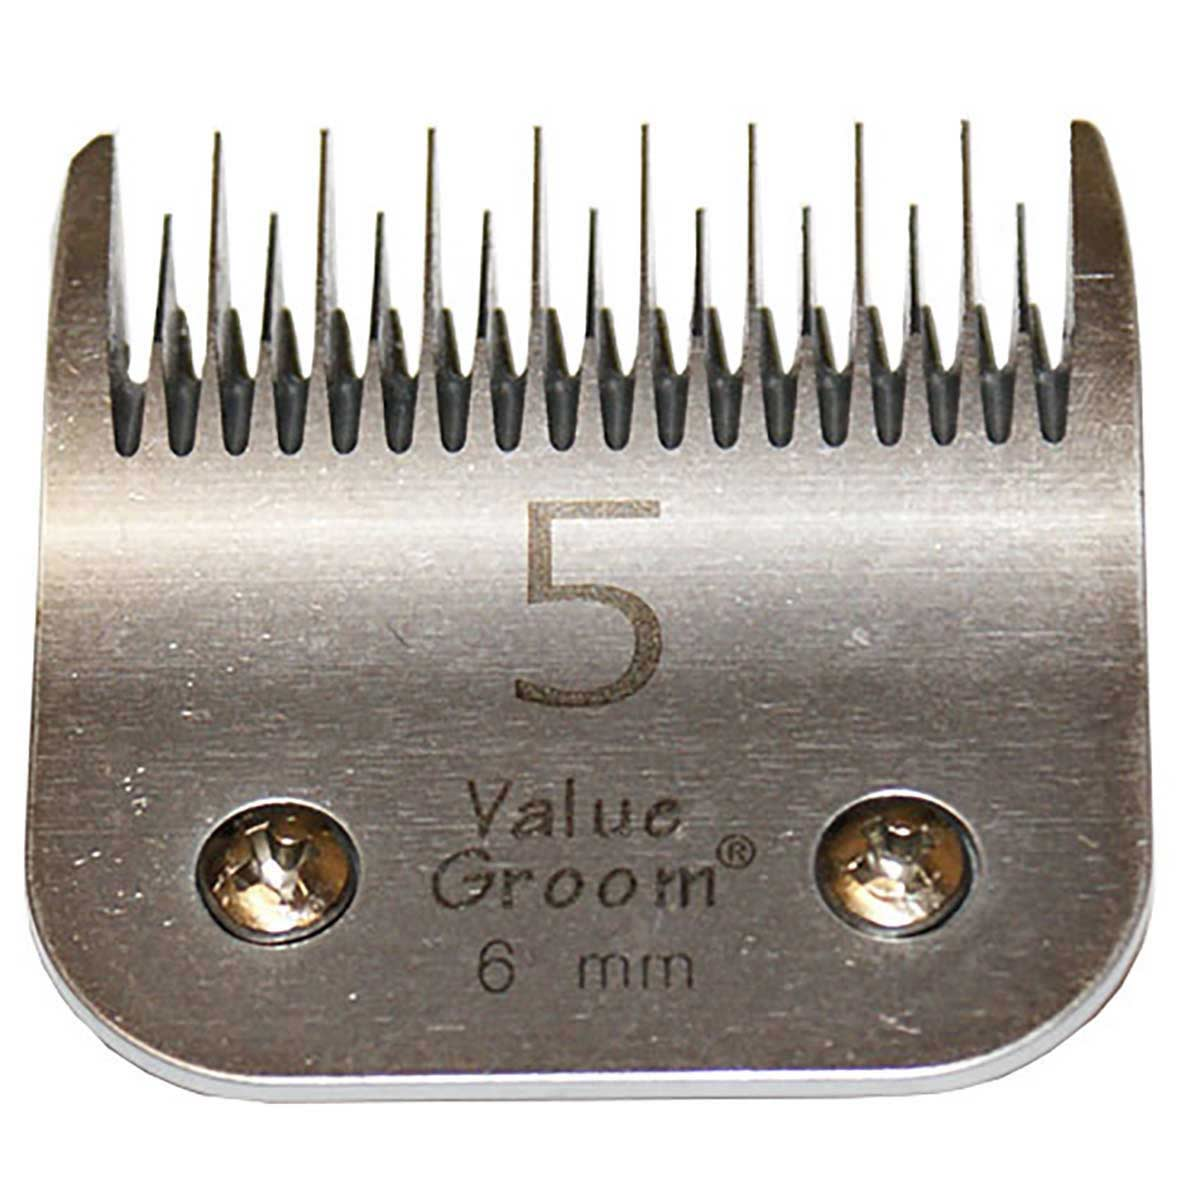 """Value Groom #5 Conventional Blade Skip Tooth 1/4"""" 6 mm"""